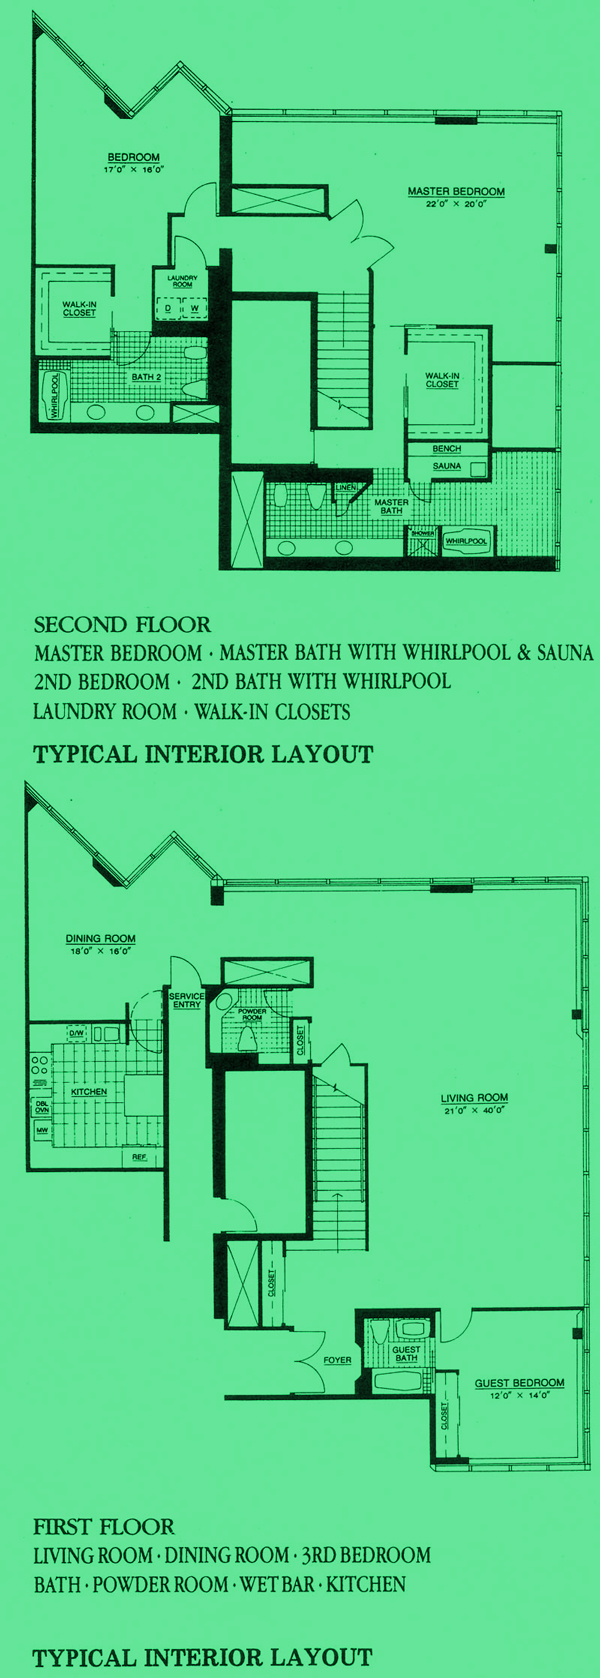 Imperial Plaza Townhome N unit